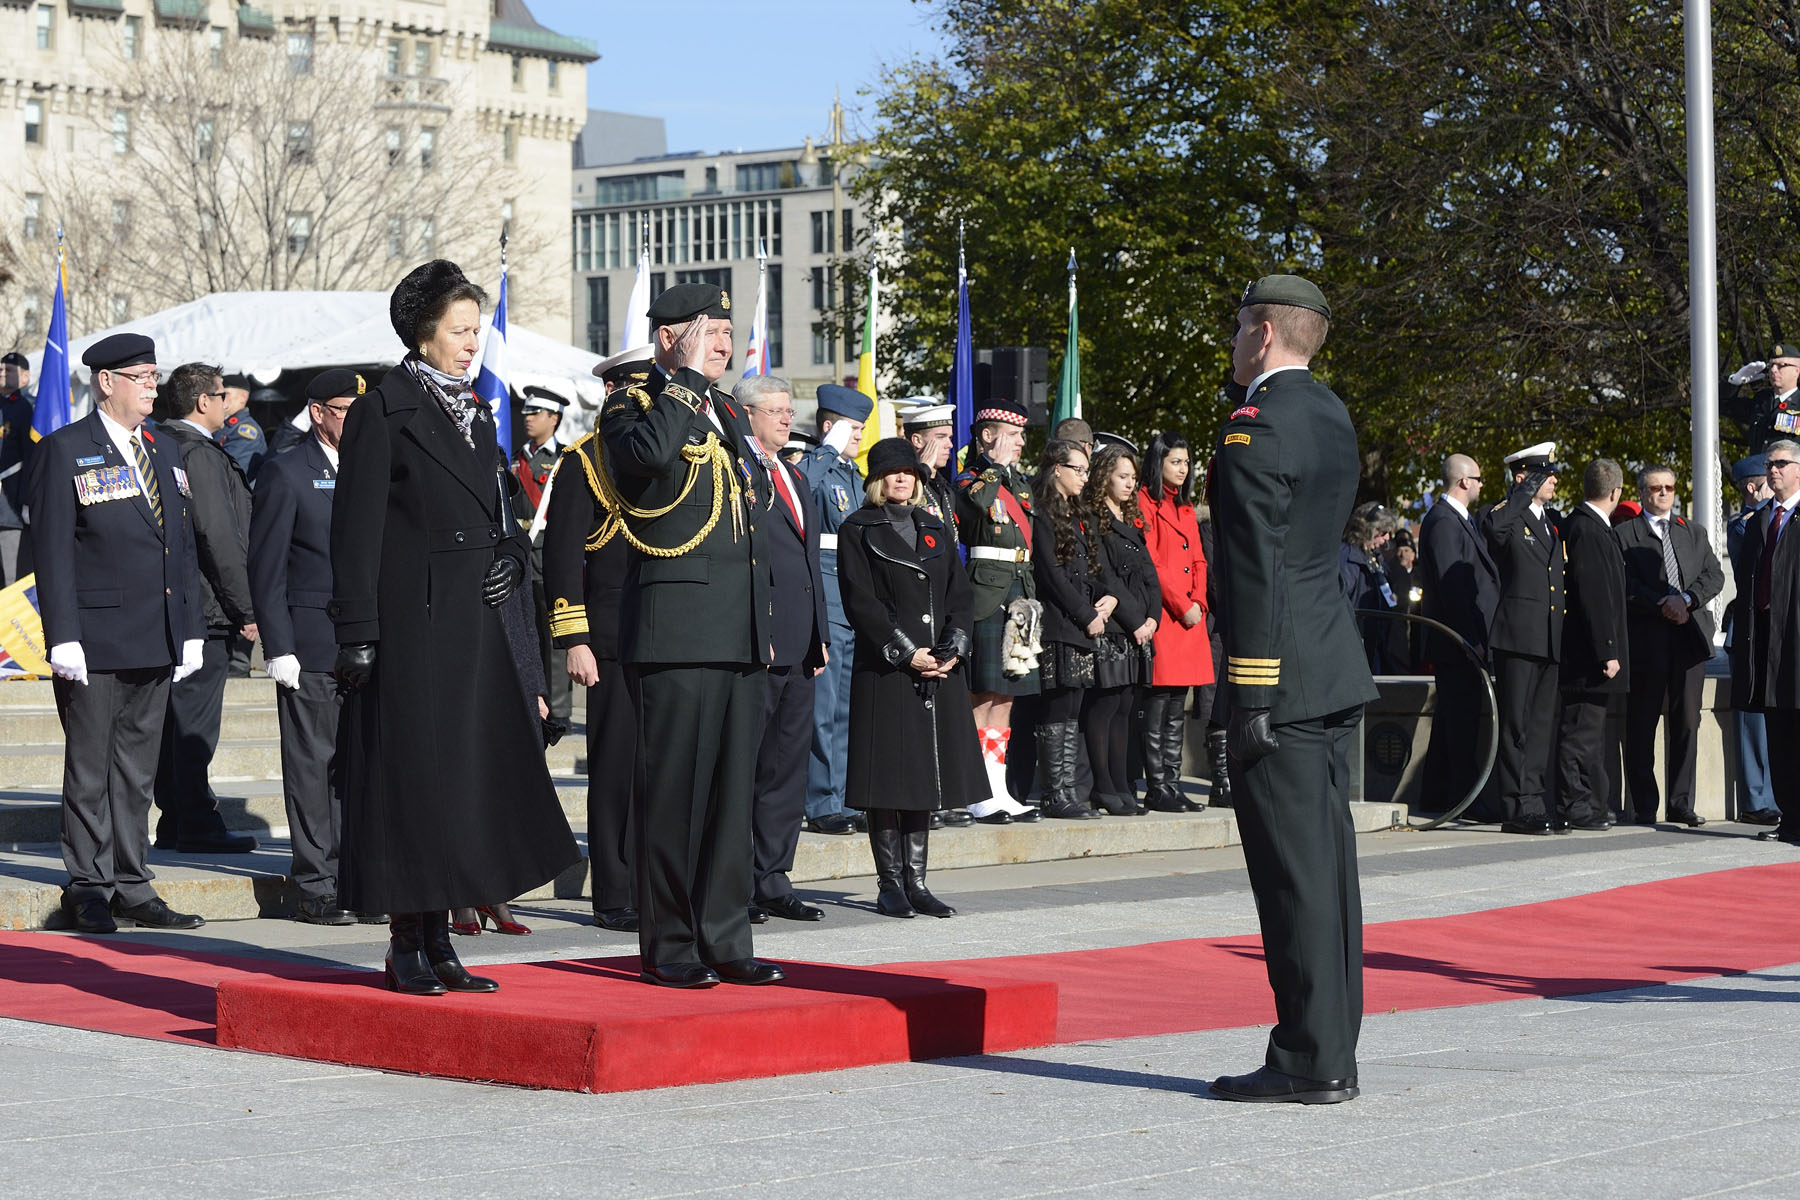 Their Excellencies, joined by Her Royal Highness The Princess Royal and Vice Admiral Tim Laurence, attended the National Remembrance Day Ceremony at the National War Memorial.